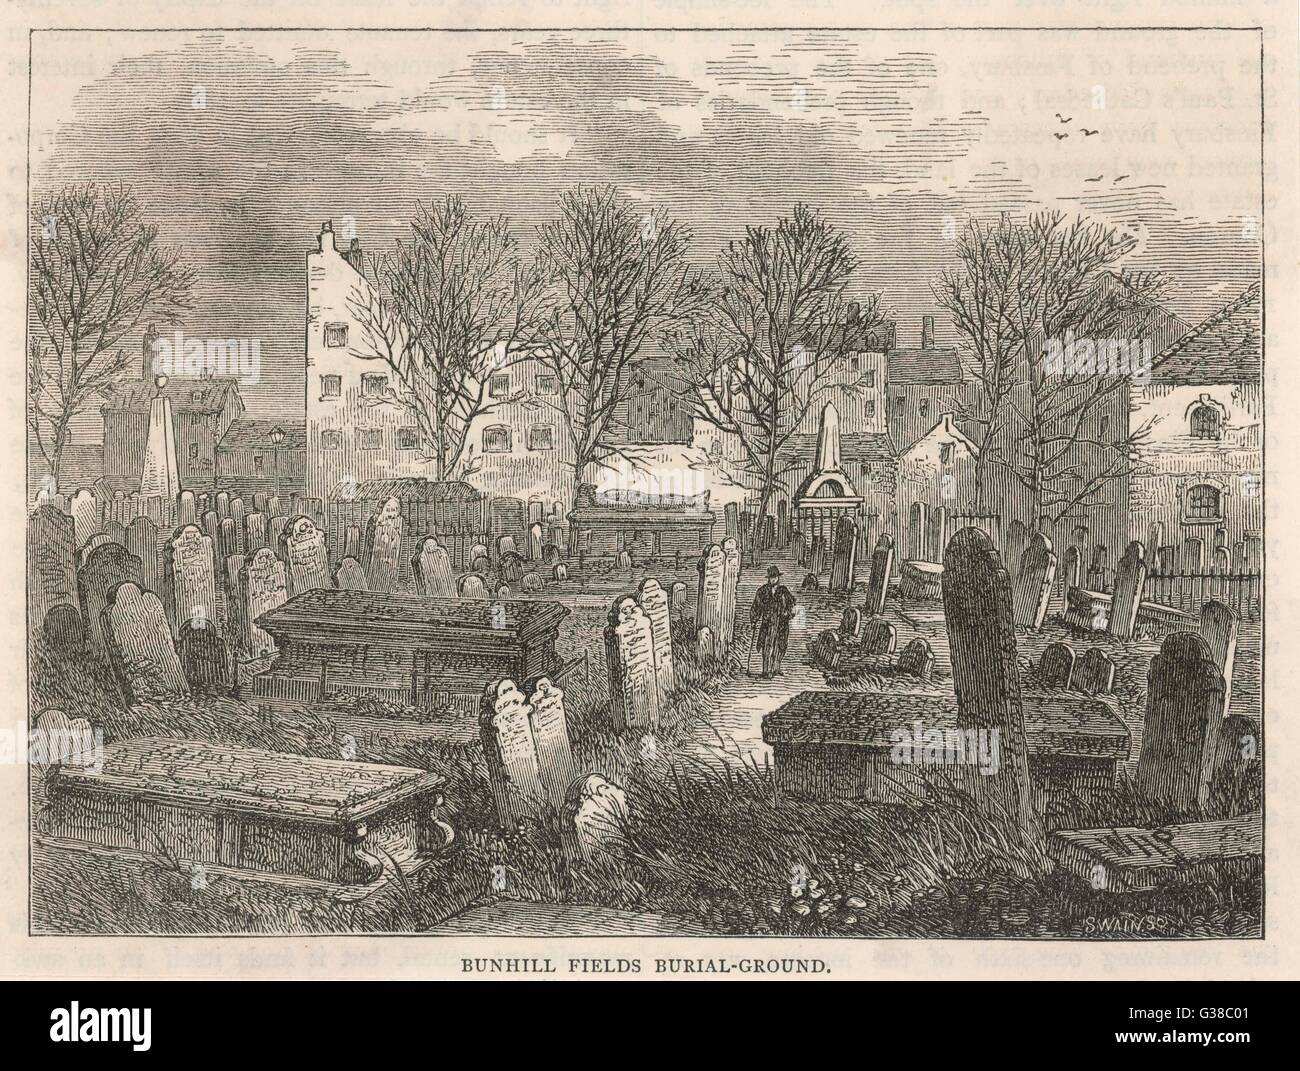 Cluttered rows of tombstones  at Bunhill Fields burial- ground, London - Stock Image